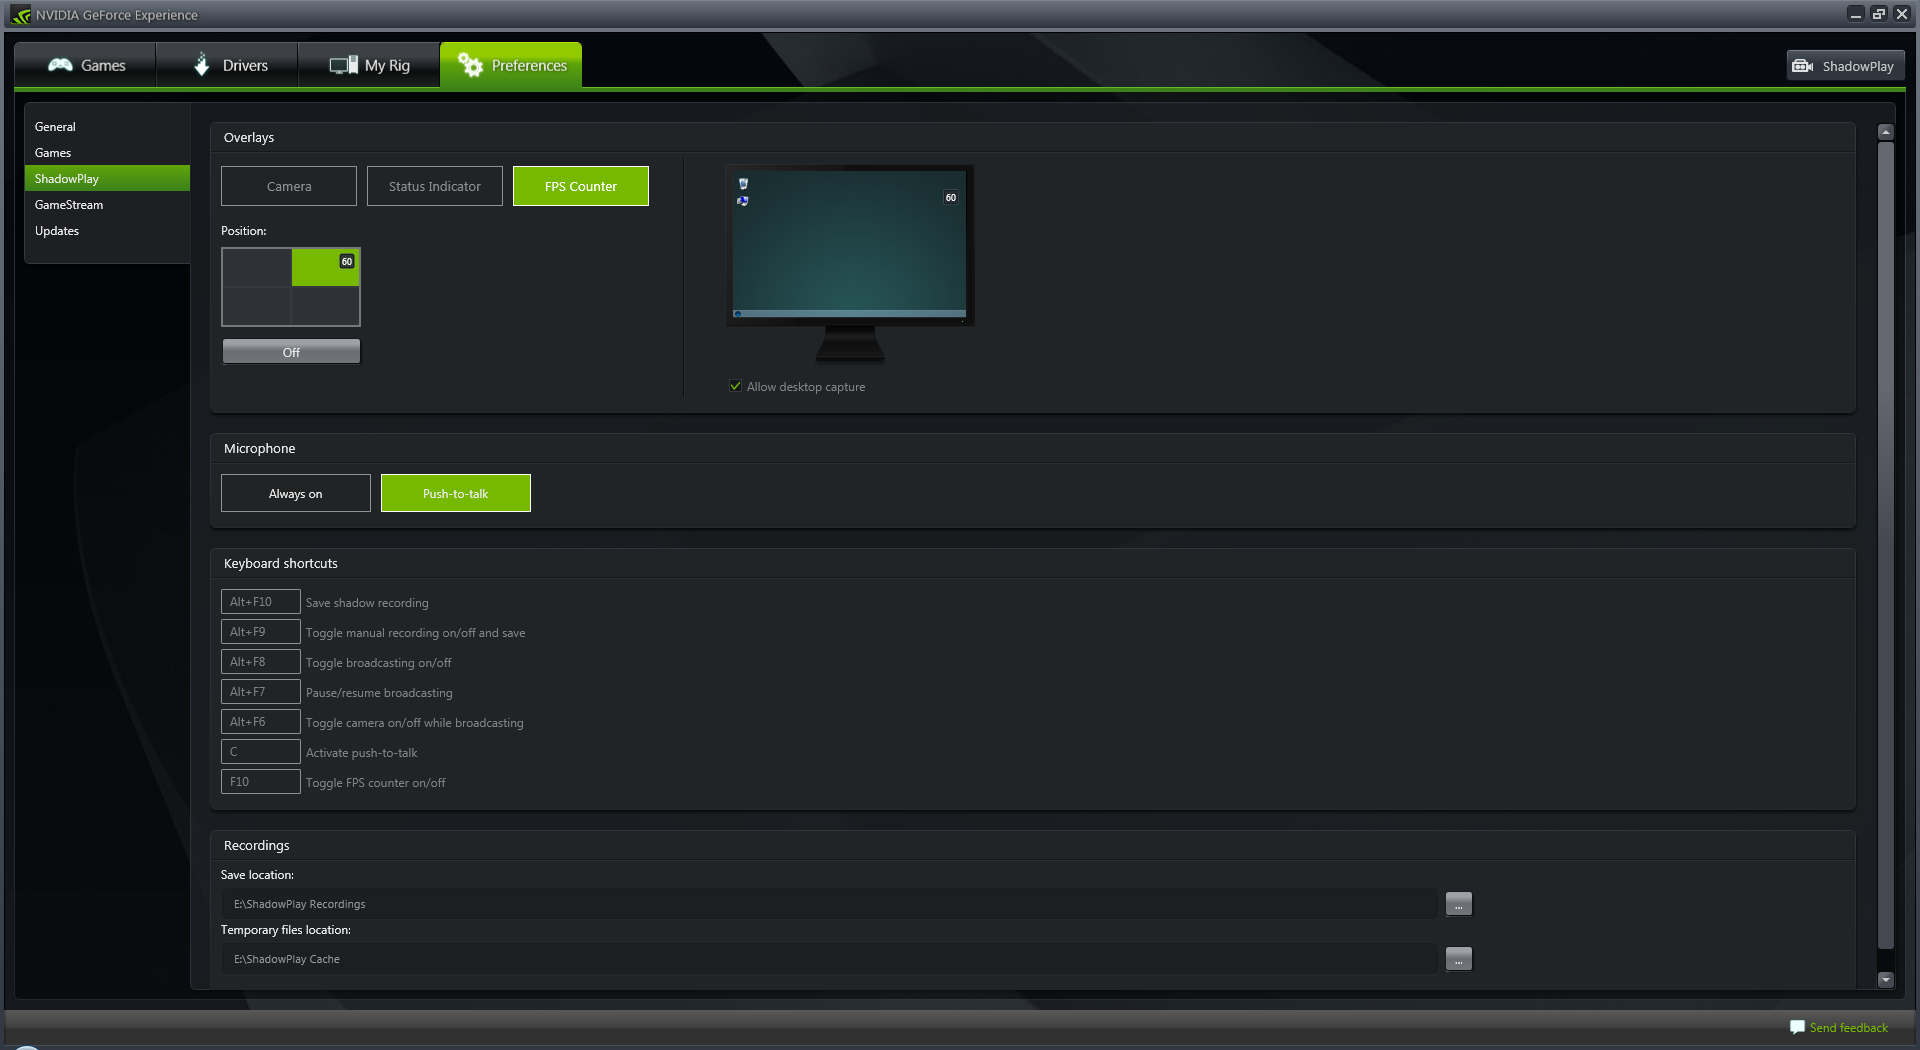 geforce experience 2.1 adds in-game fps counter, shadow mode for